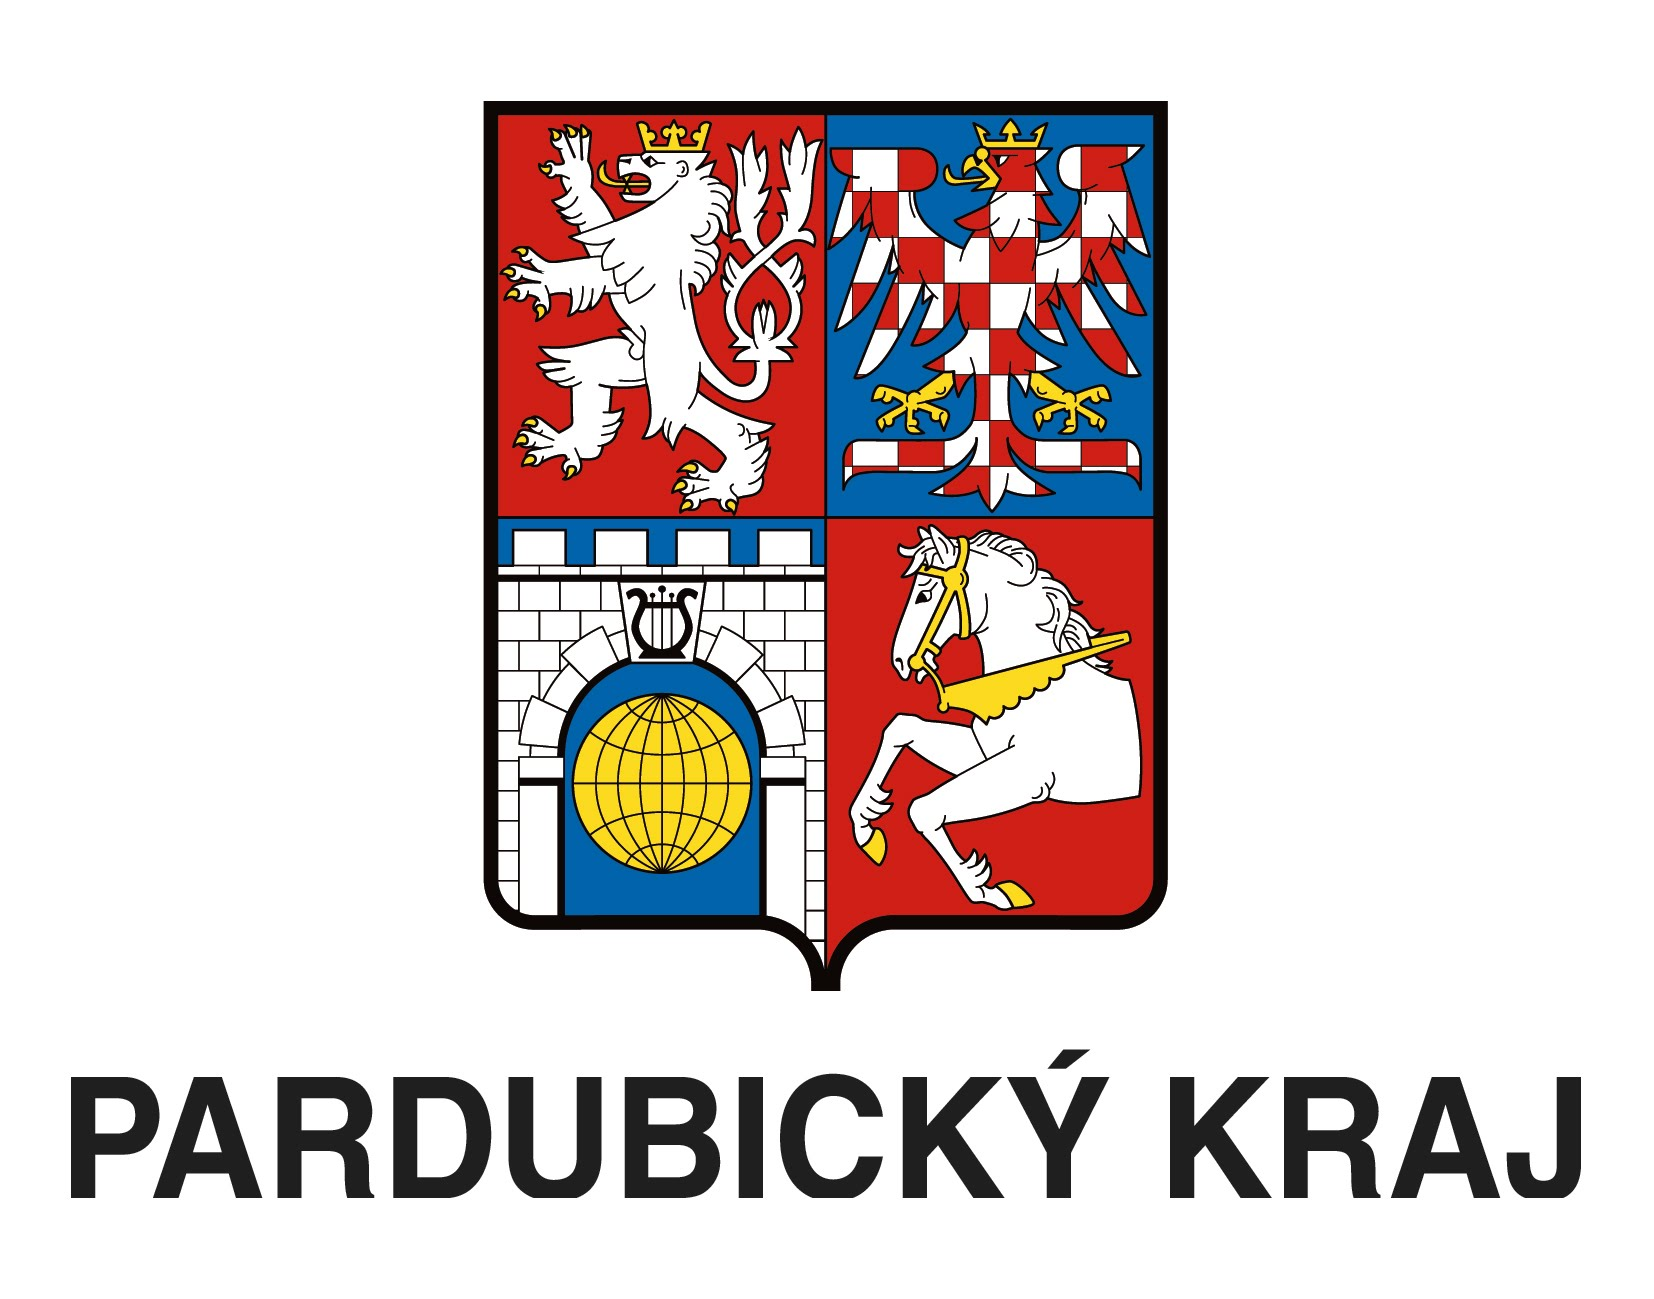 http://www.pardubickykraj.cz/uvodni-strana